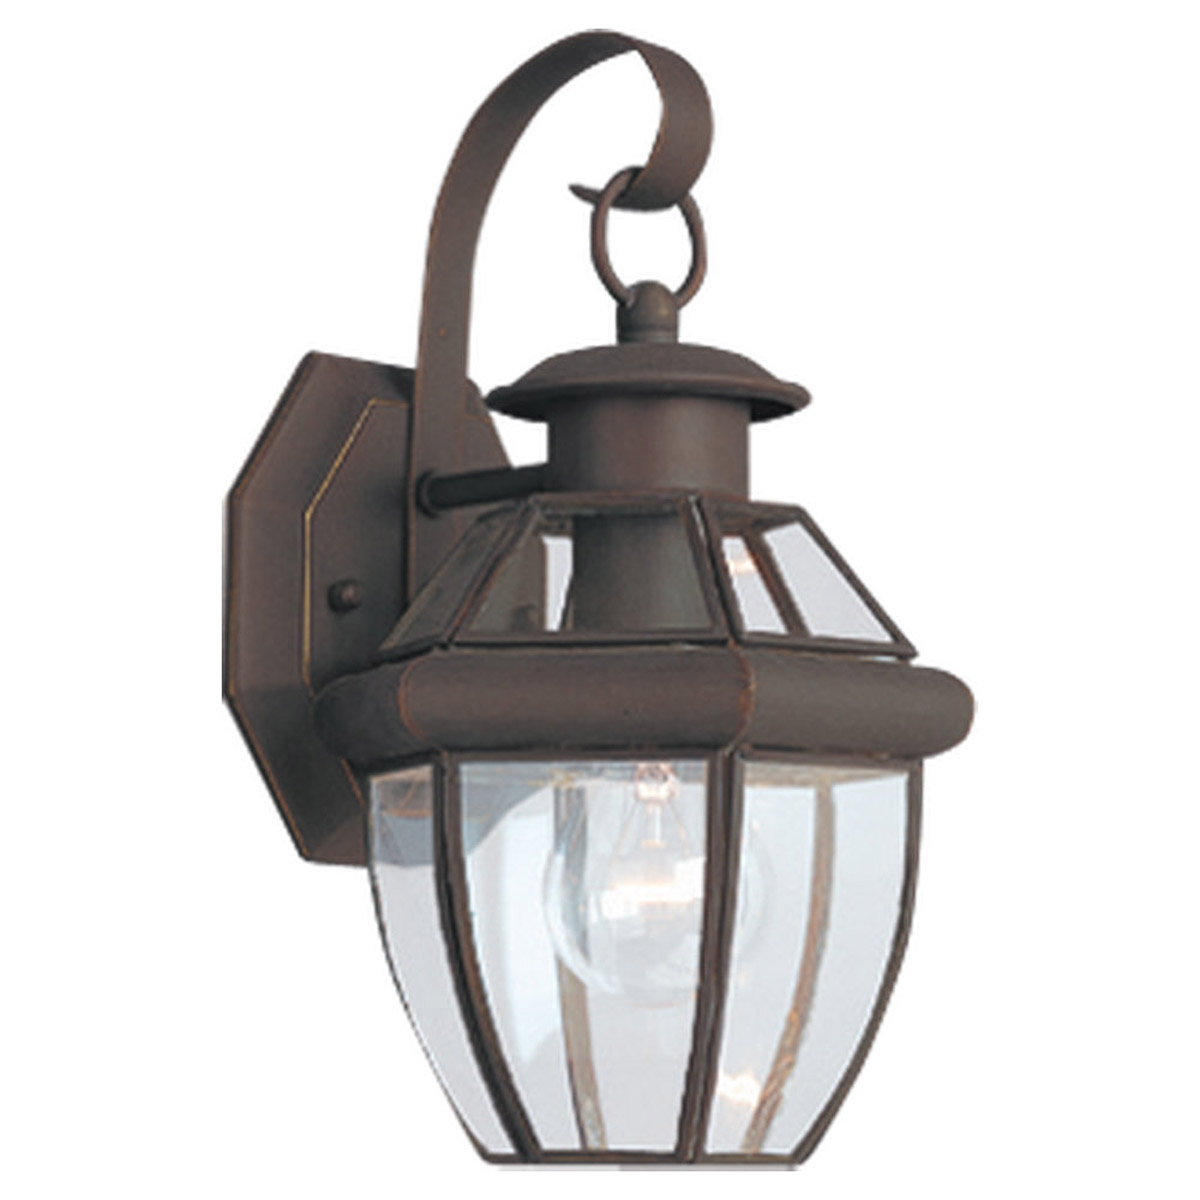 Sea Gull Lighting Lancaster 1 Light Outdoor Wall Lantern in Antique Bronze 8037-71